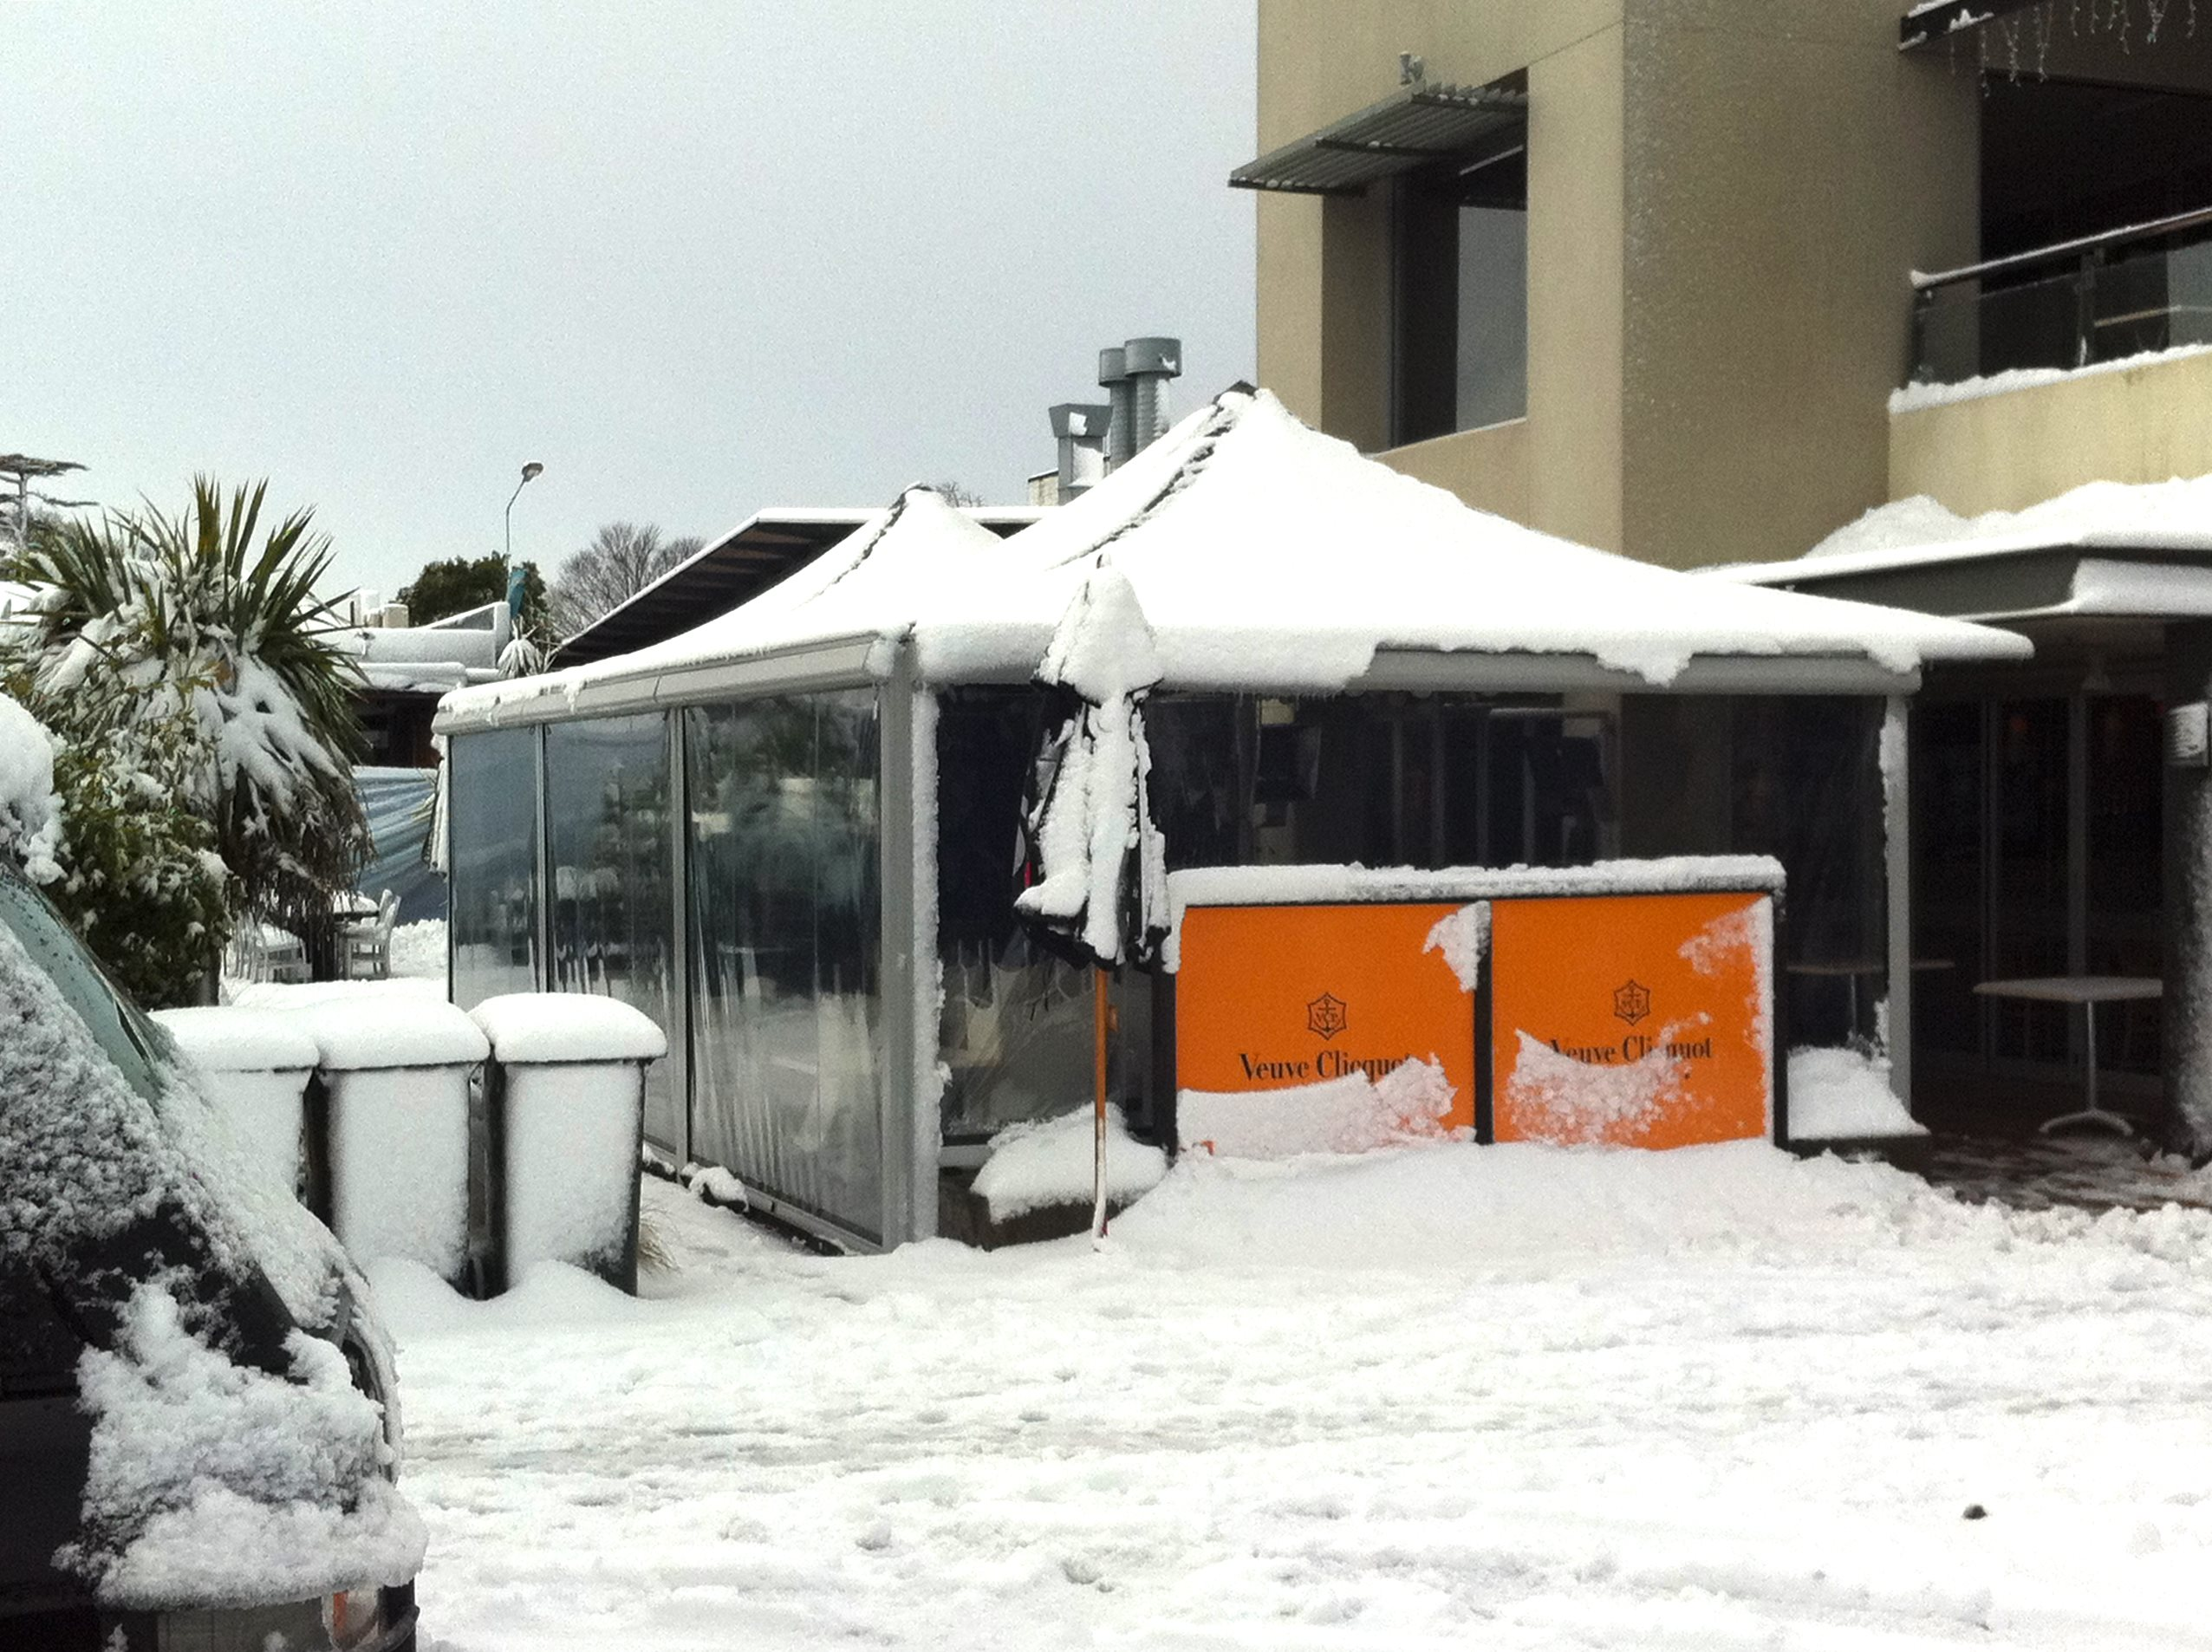 Parasol Umbrella withstanding the weight of a recent snow fall at a restaurant